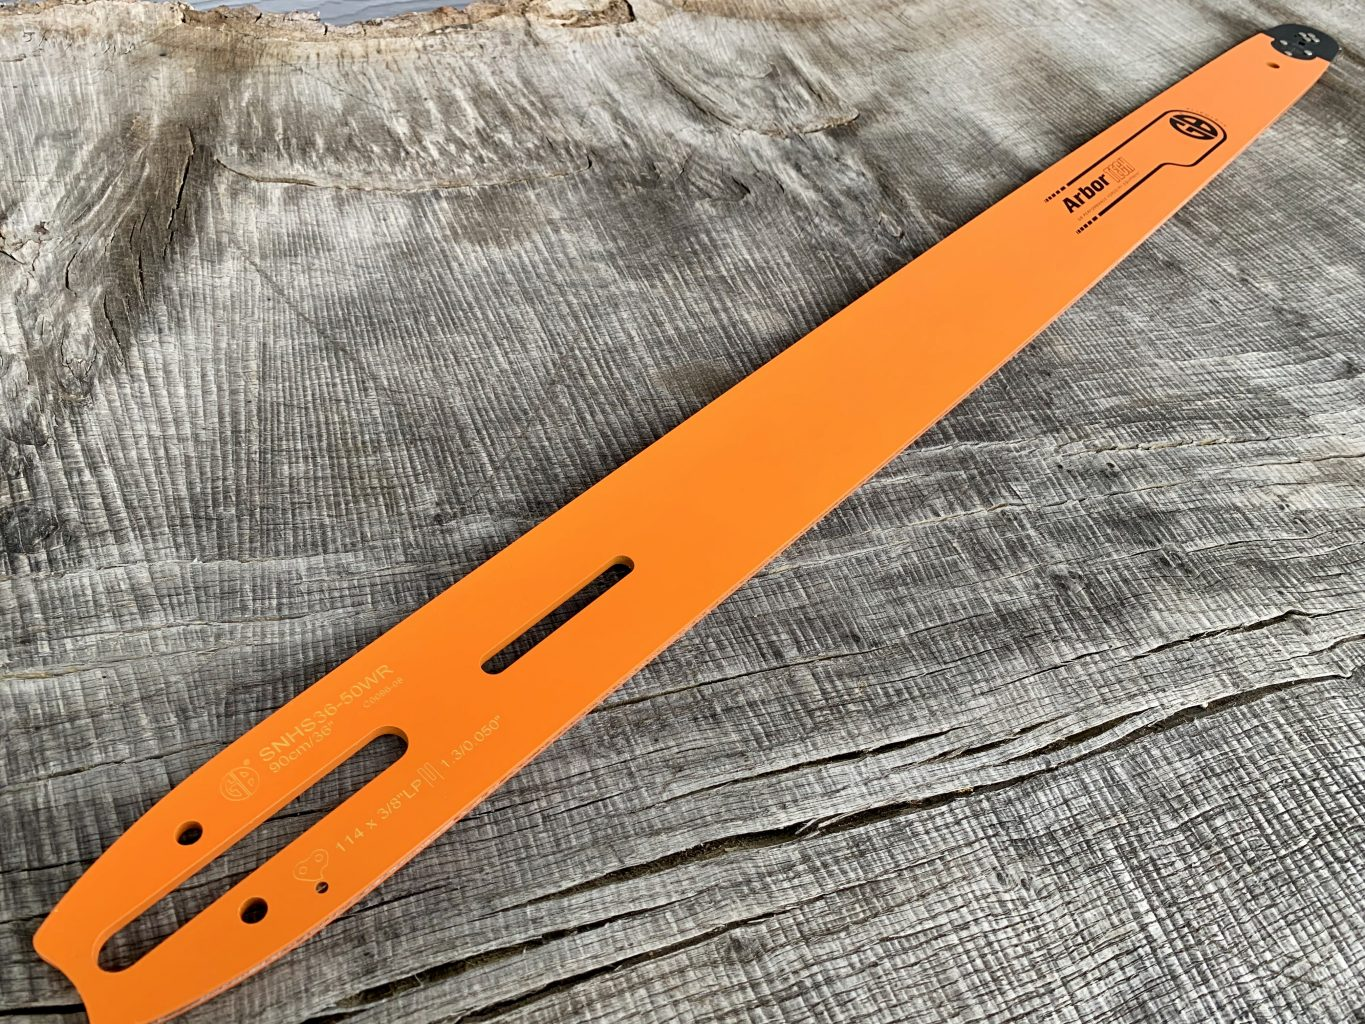 """HSS74-63RQ 74""""[188cm] GB Slotted Extra Long 6 Foot Bar for Stihl 050, 051, 070, 075, 076, 08, 090, 088, MS880 .404 .063 196 drive links"""